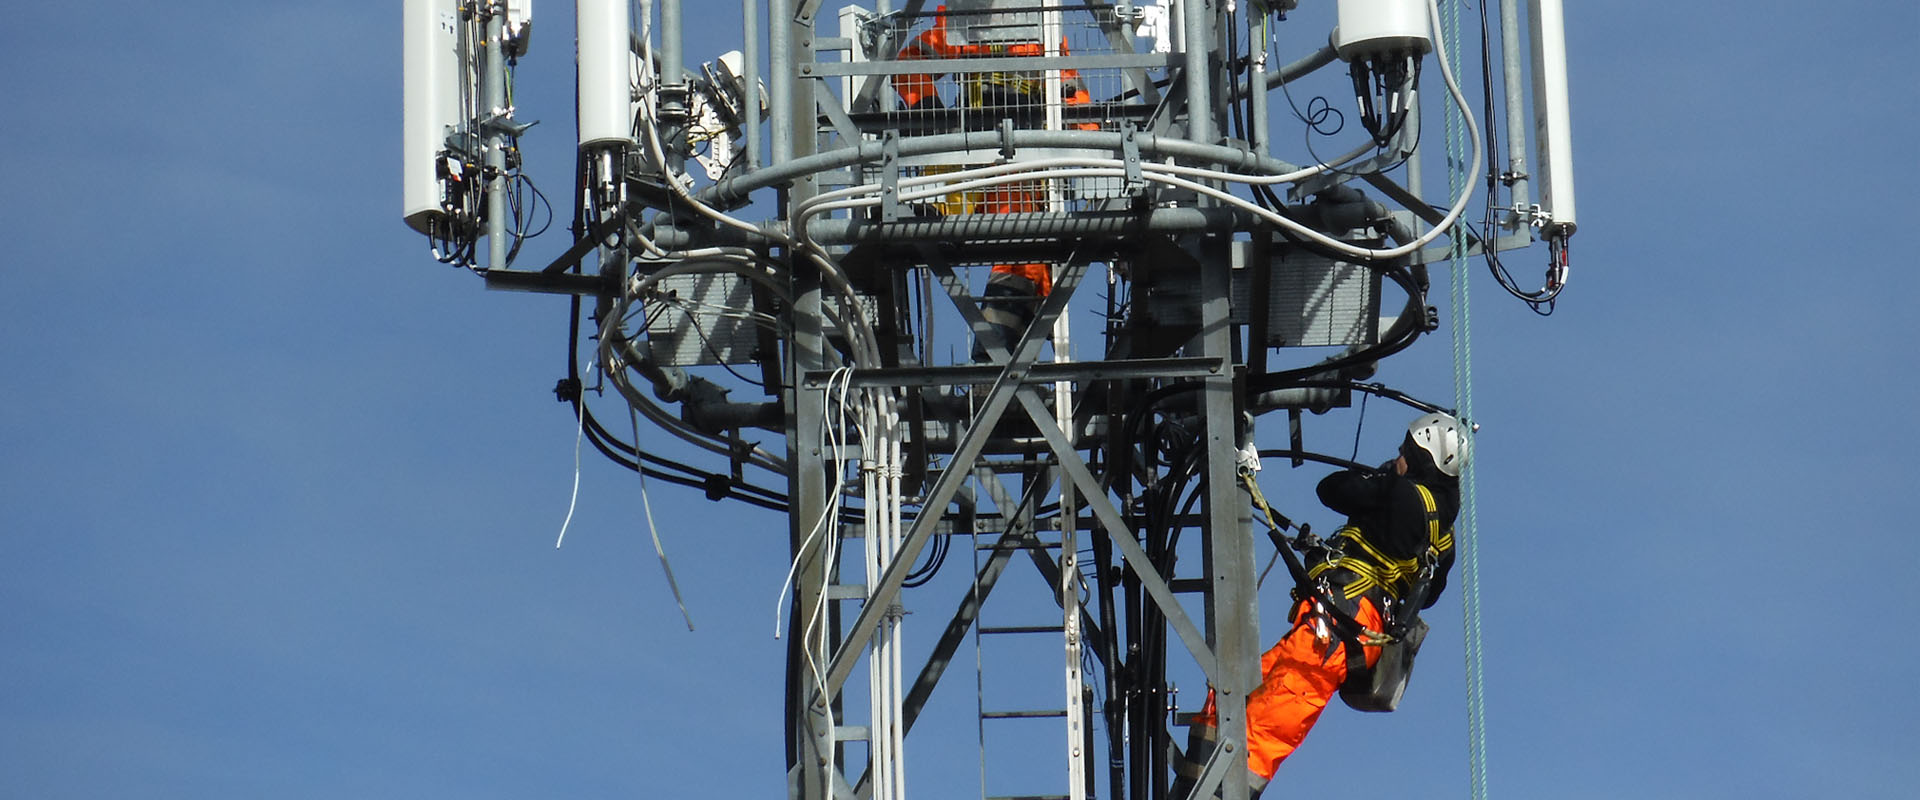 Radio Tower Manufacture Supply & Installation Service